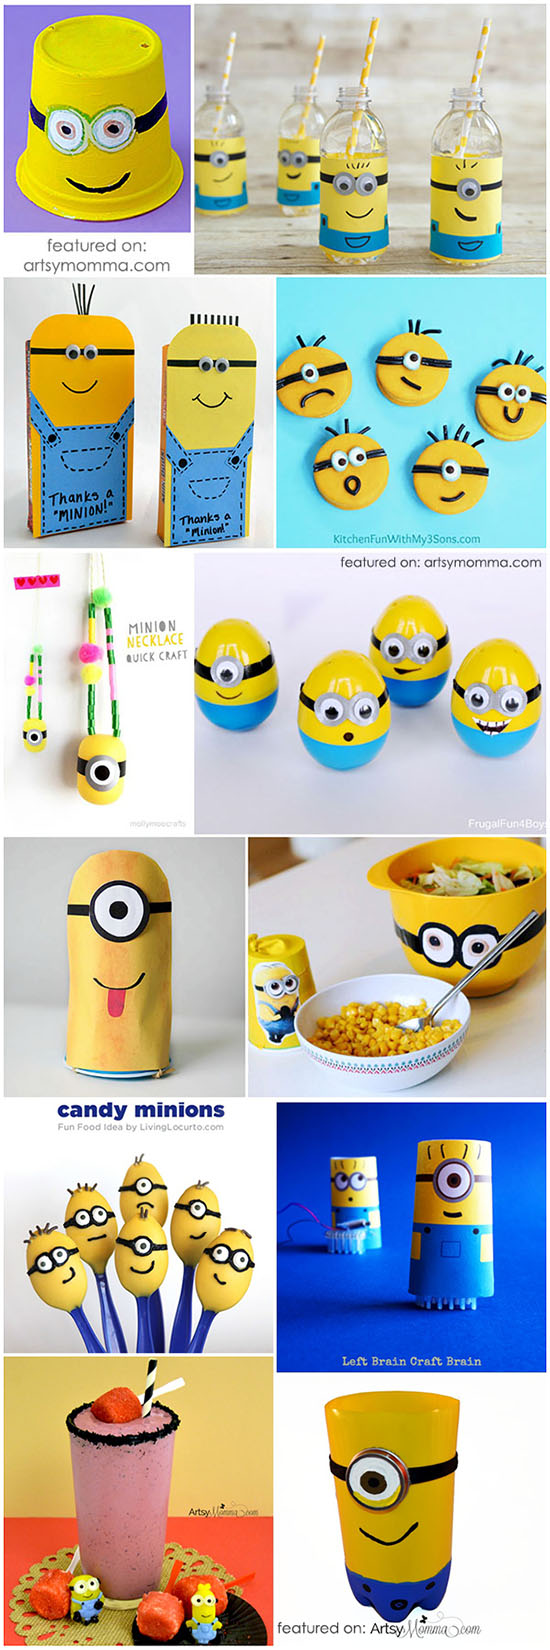 Ultimate Guide to Minions & Despicable Me Party Ideas, Crafts, Food, & Activities